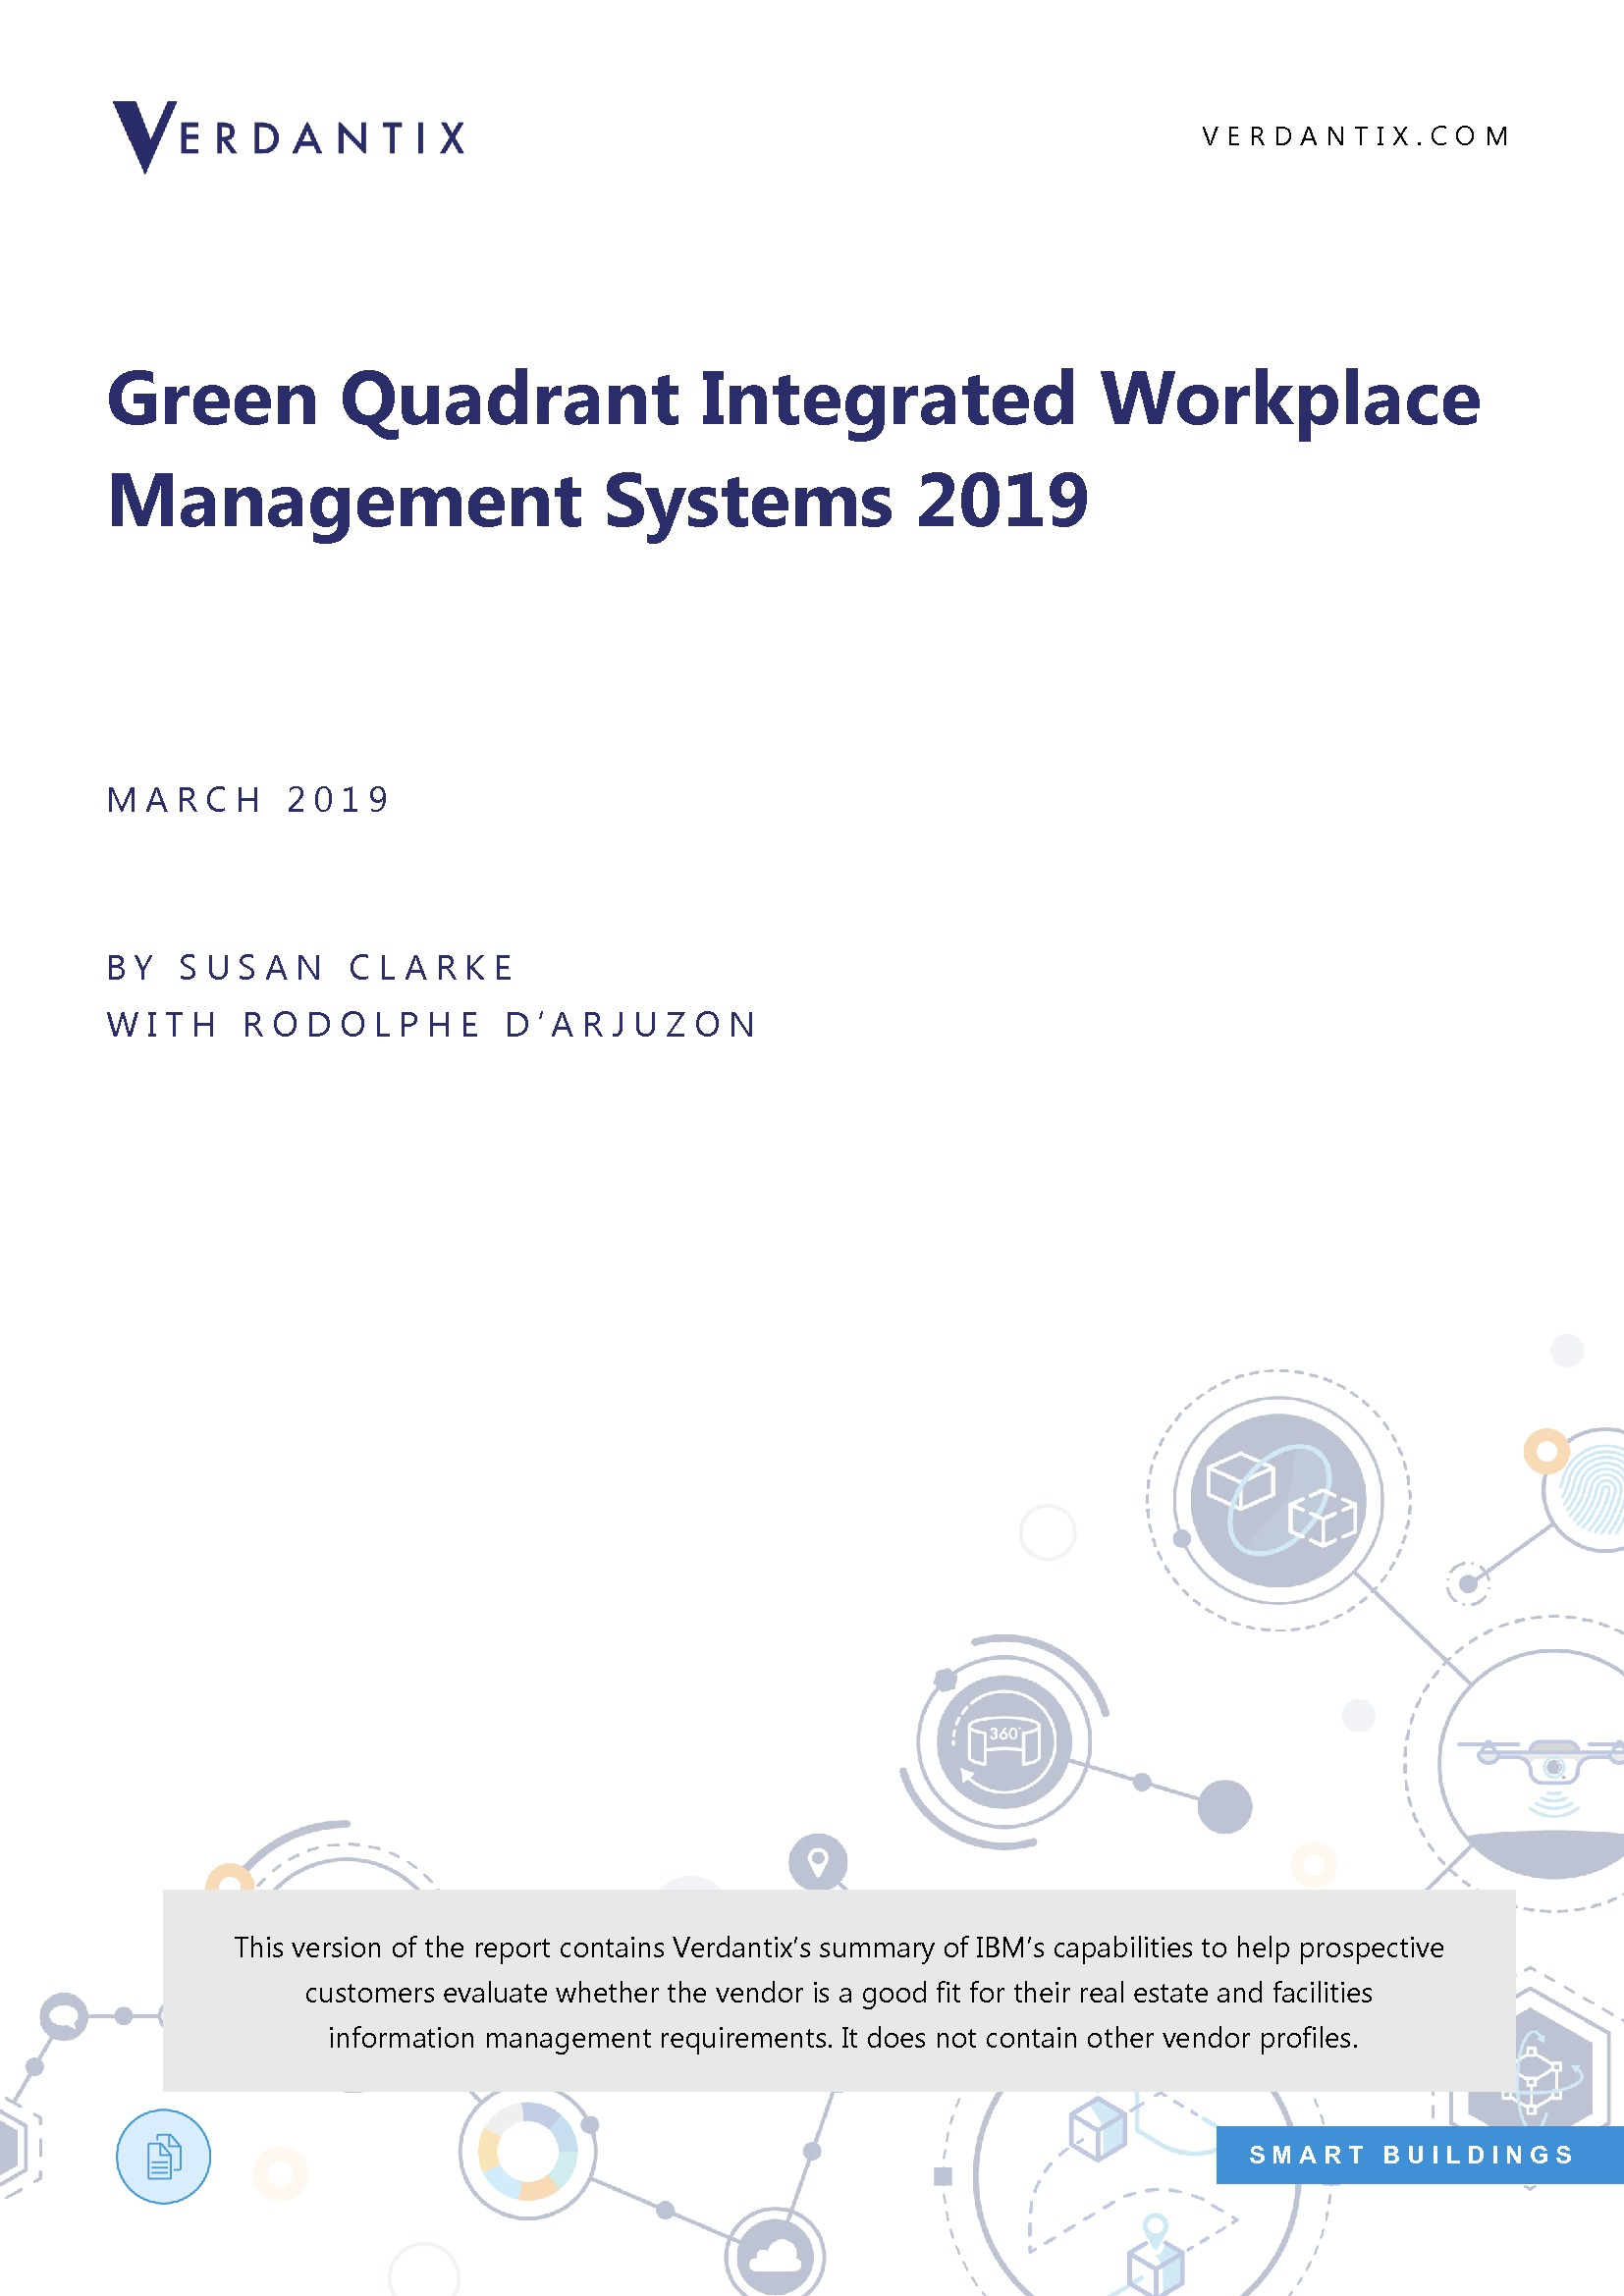 The Verdantix Green Quadrant IWMS